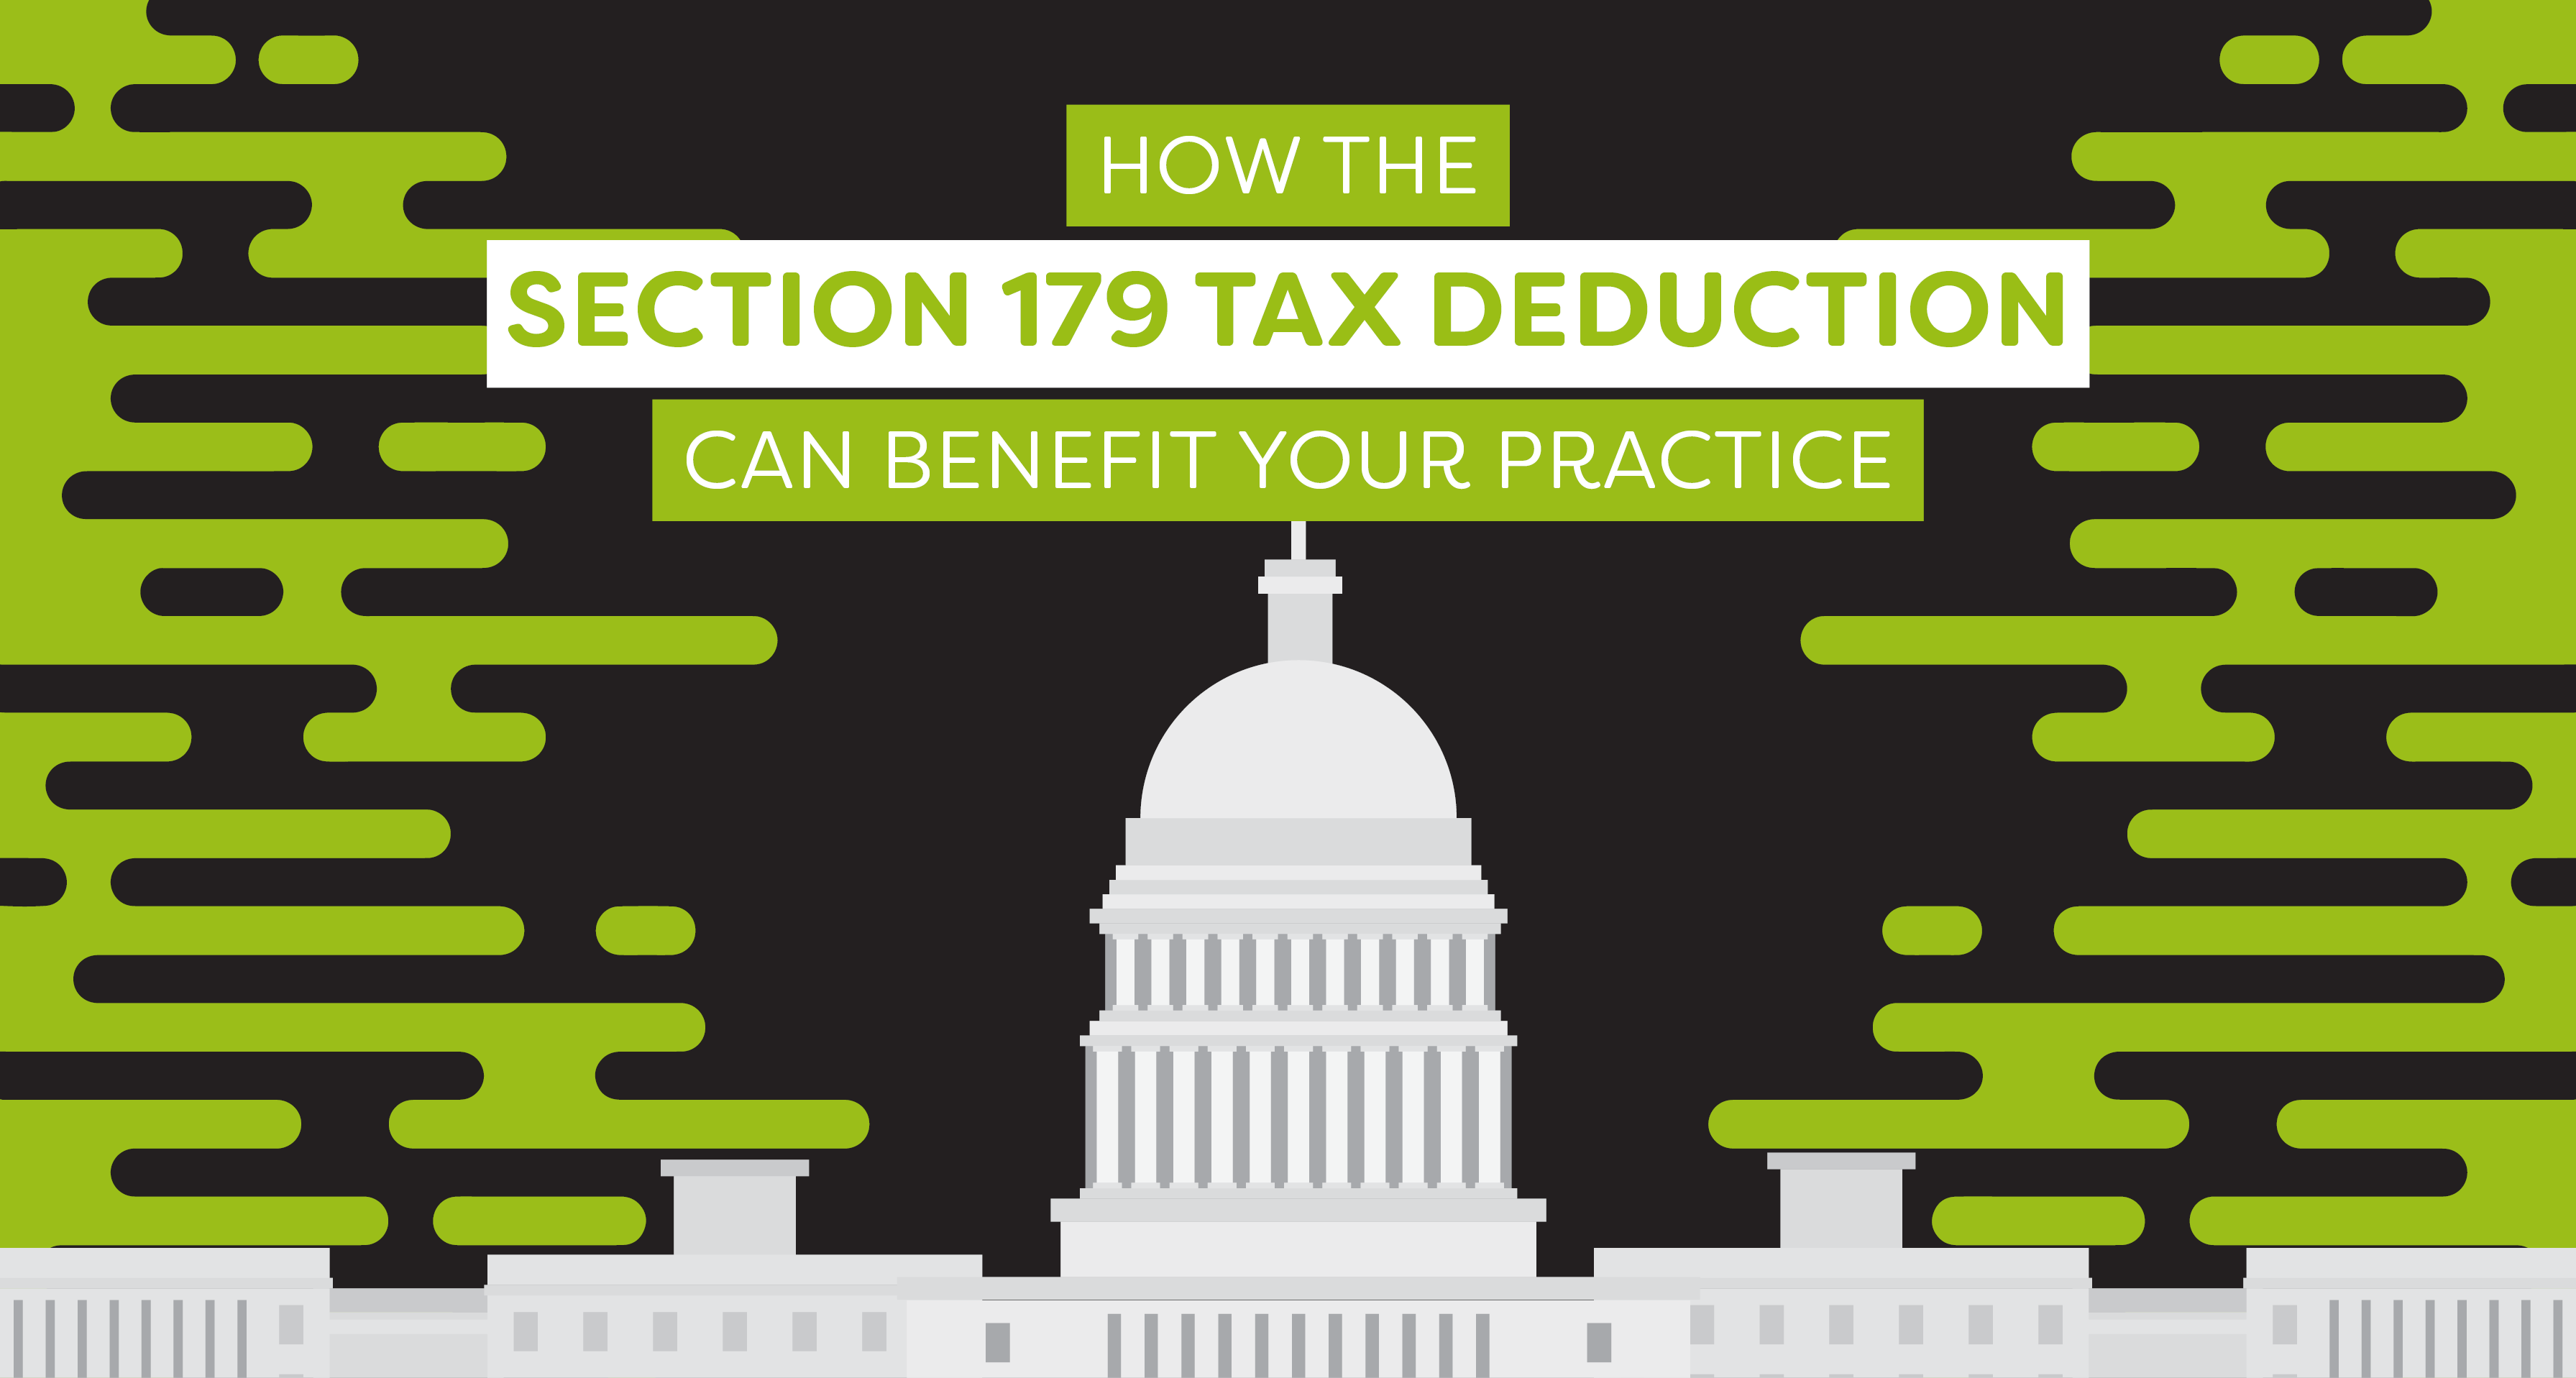 Section 179 Infographic Blog Post Image.png